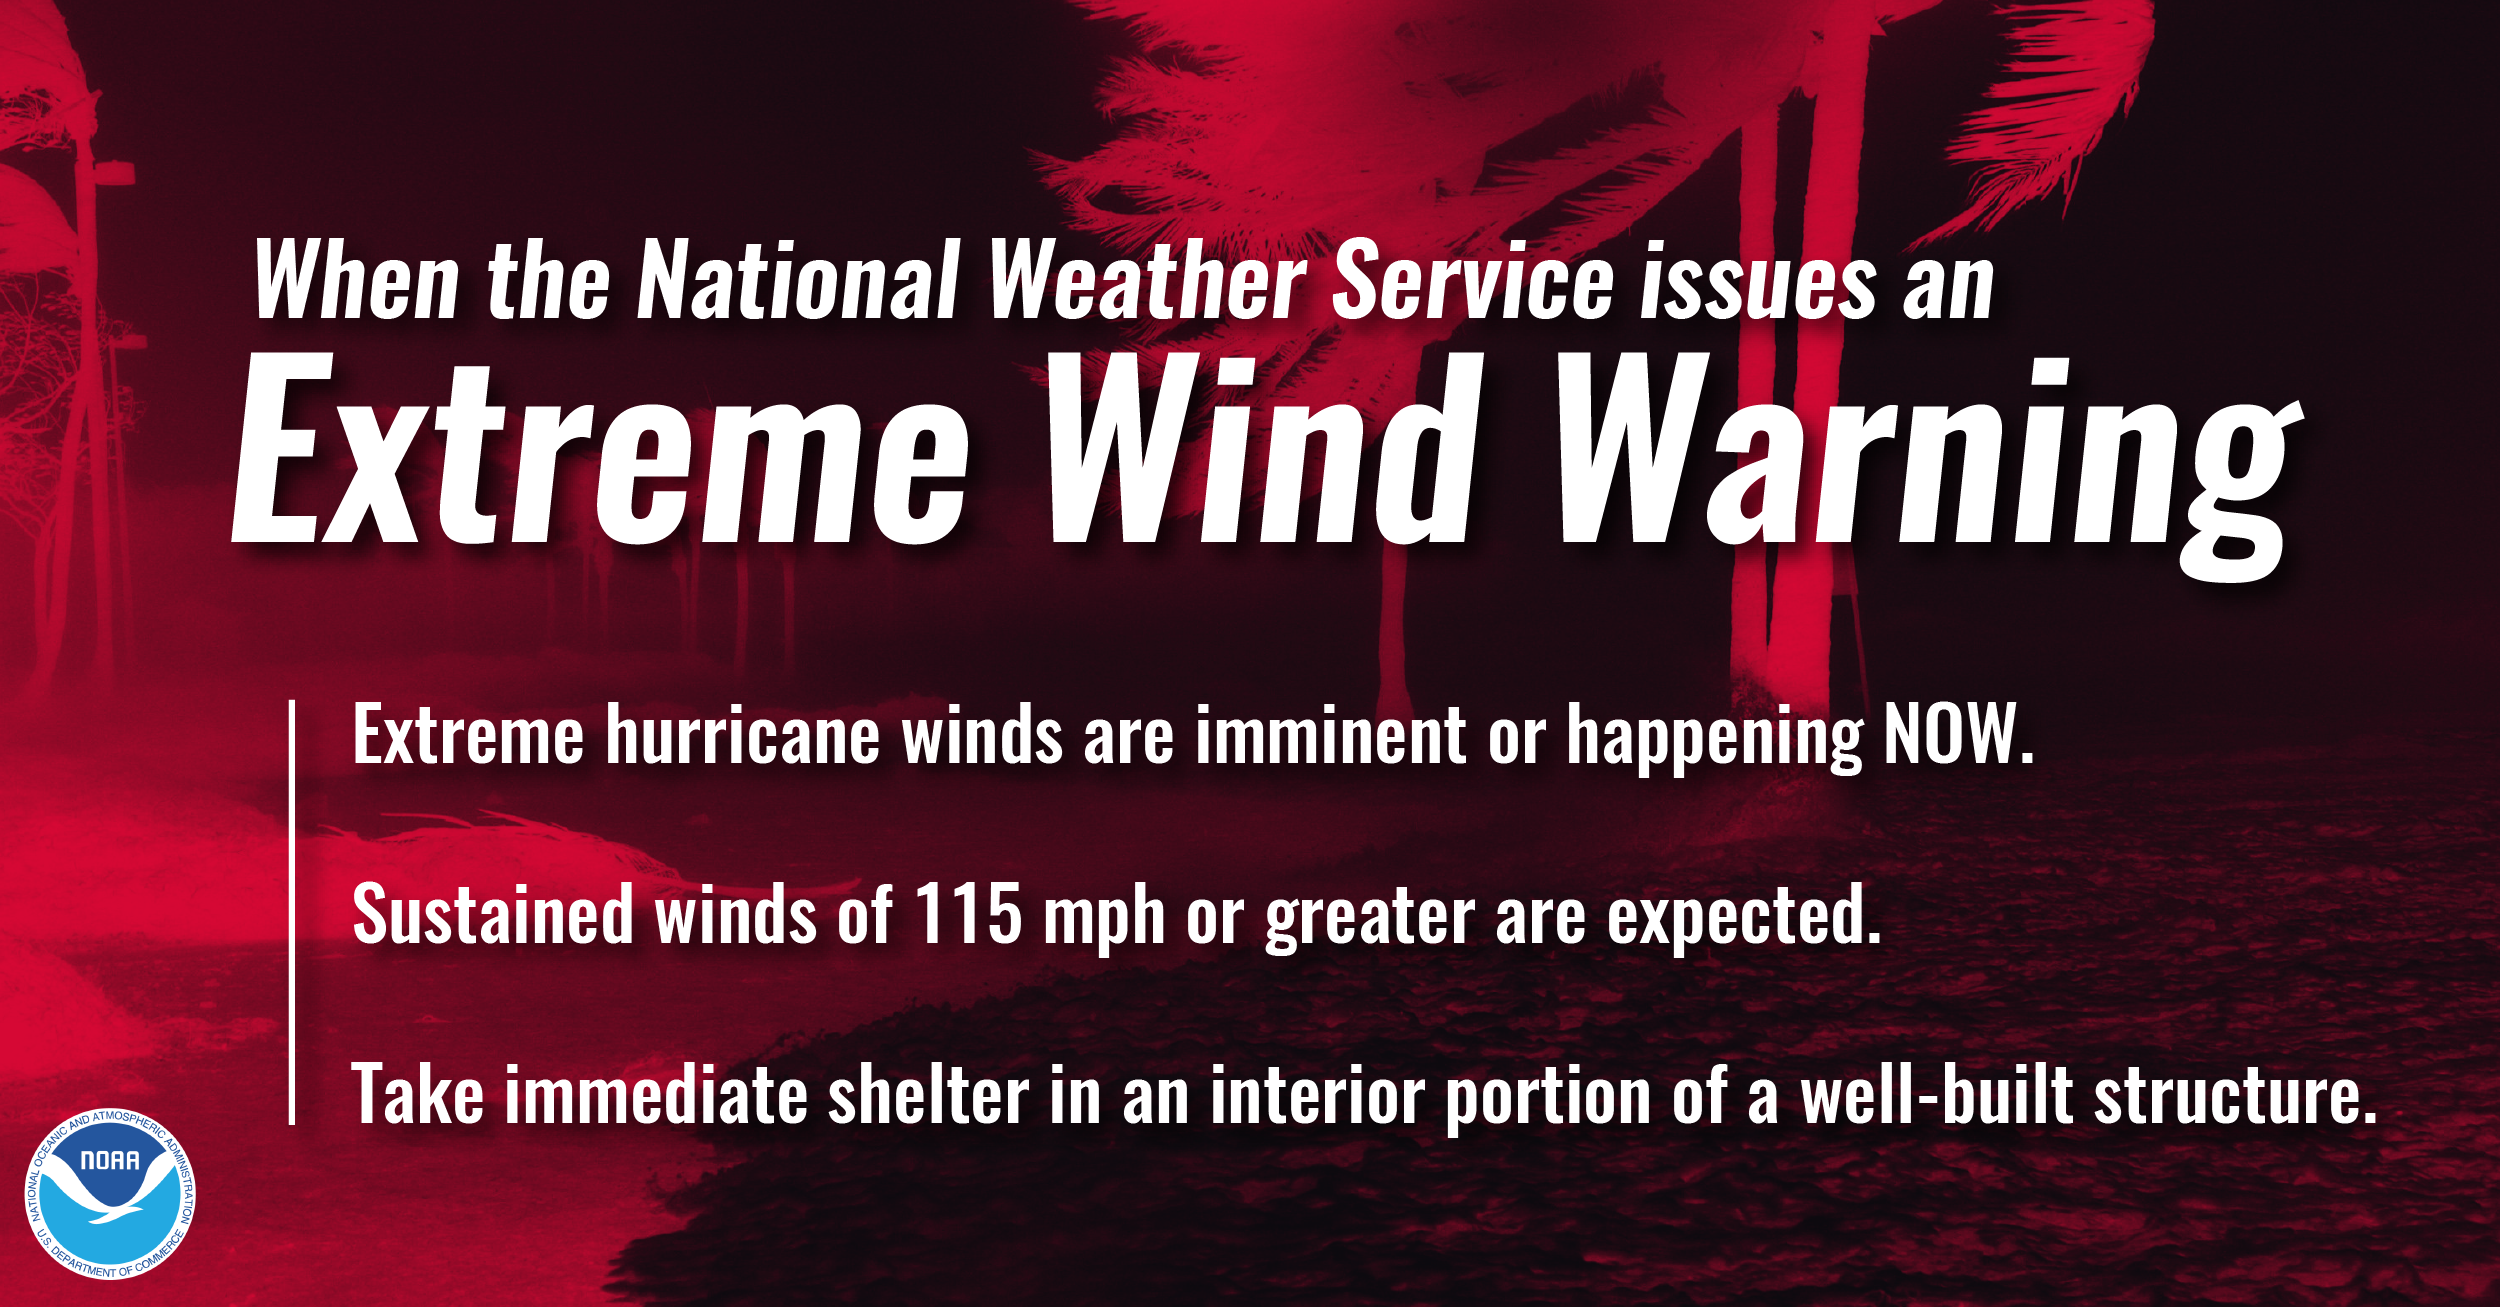 When the National Weather Service issues an Extreme Wind Warning, it means: 1) Extreme hurricane winds are imminent or happening NOW. 2) Sustained winds of 115 mph or greater are expected. 3) Take immediate shelter in an interior portion of a well-built structure.